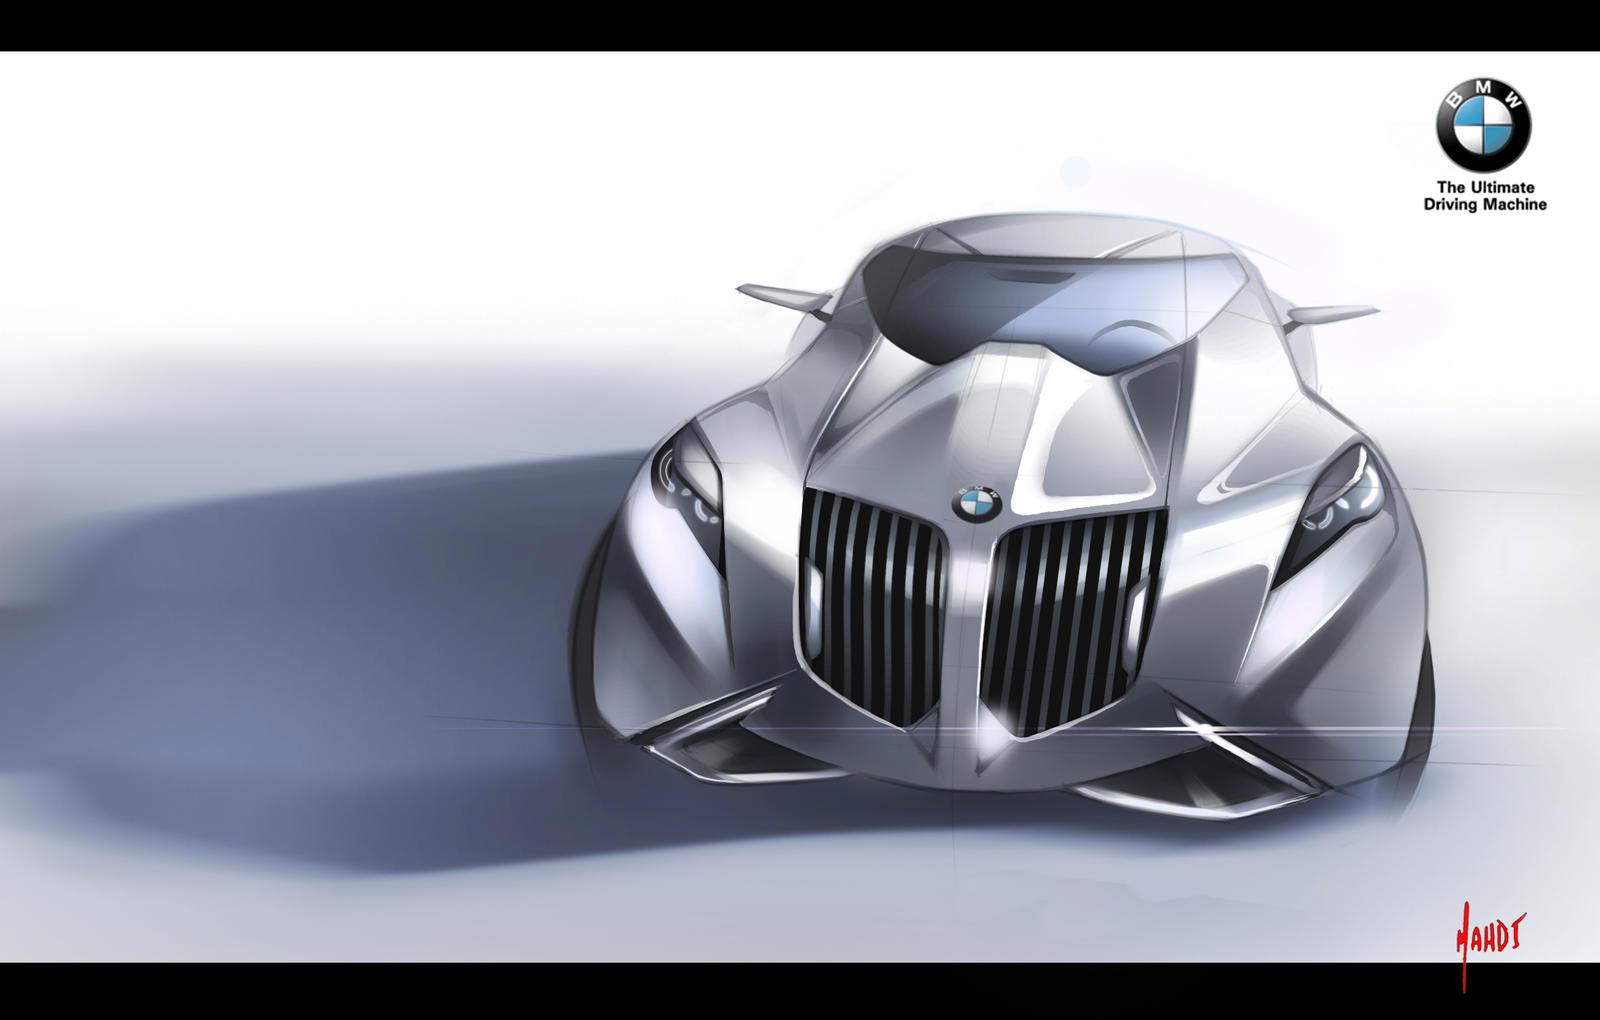 BMW coupe concept by sk8nrail